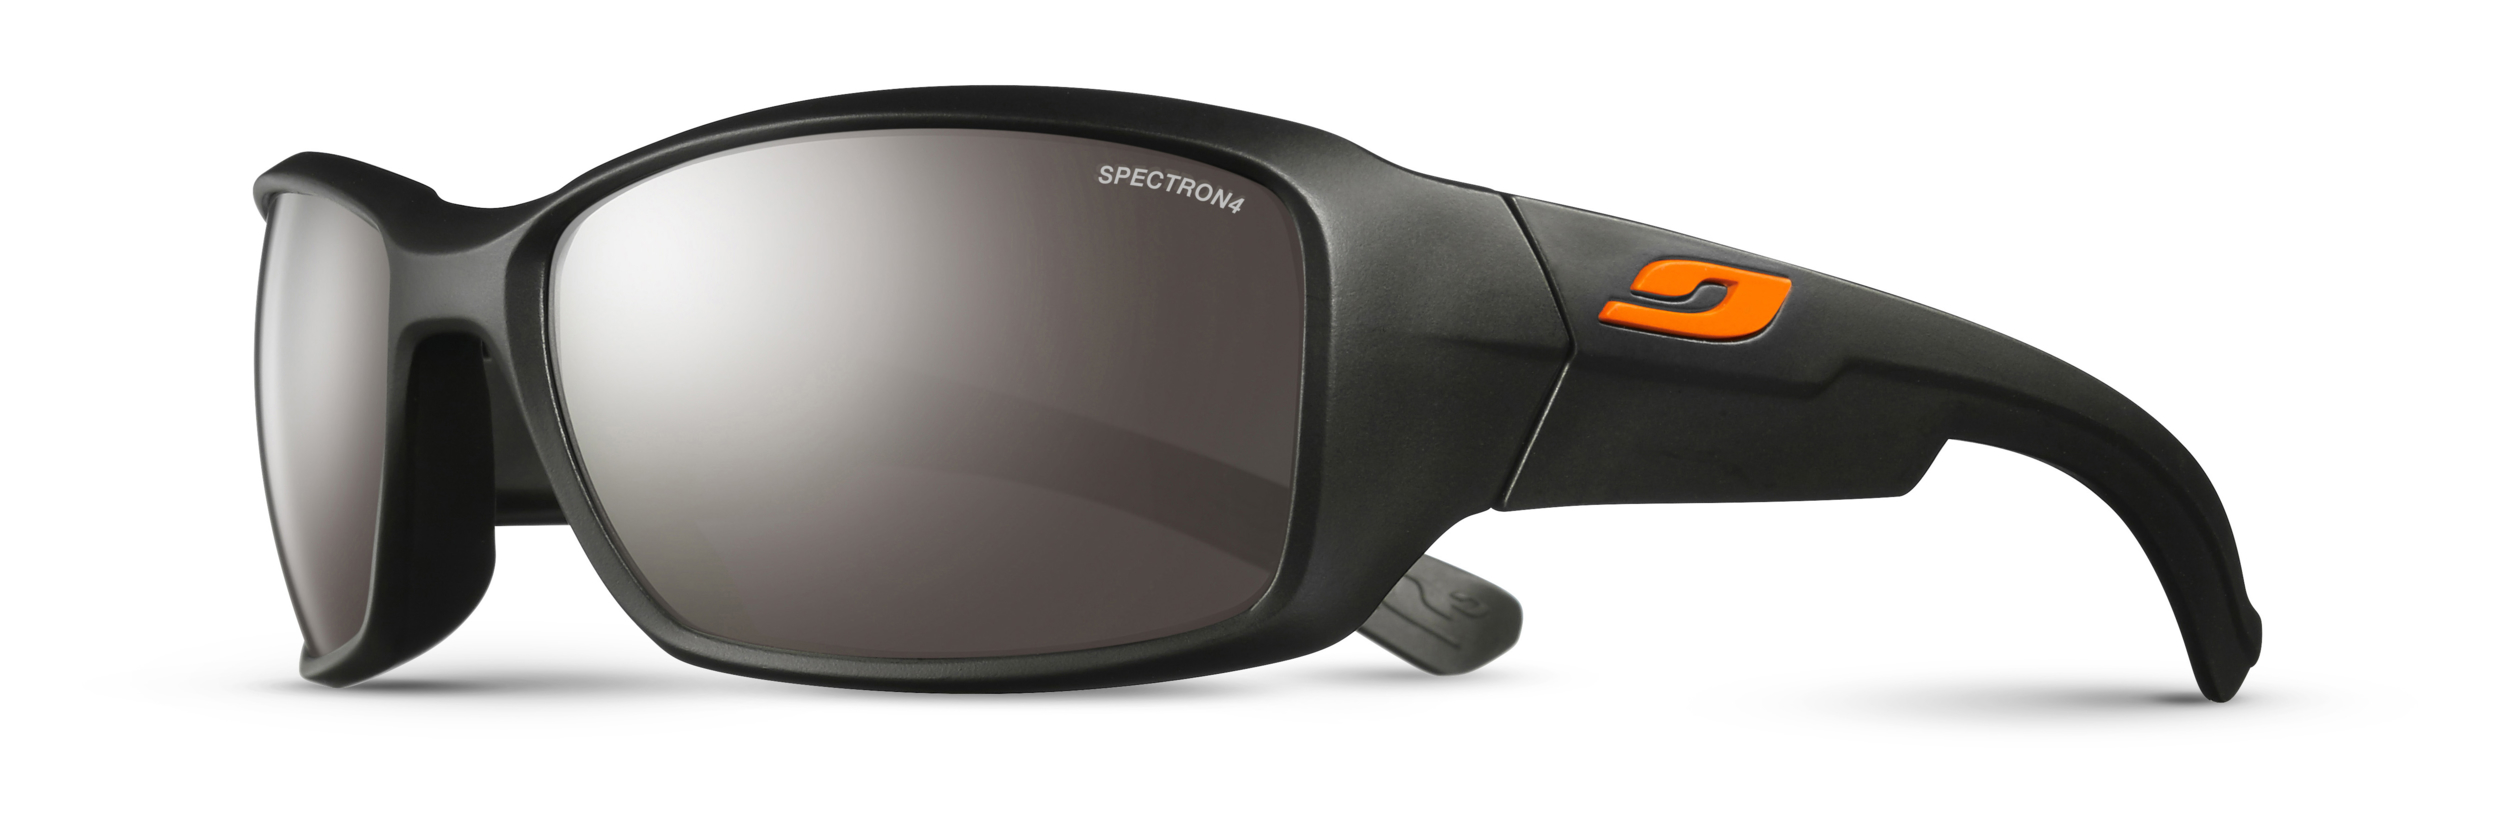 3070220612b445 Lunettes Julbo Whoops - J4001214 - Cat.4 - Julbo Collection Sport ...